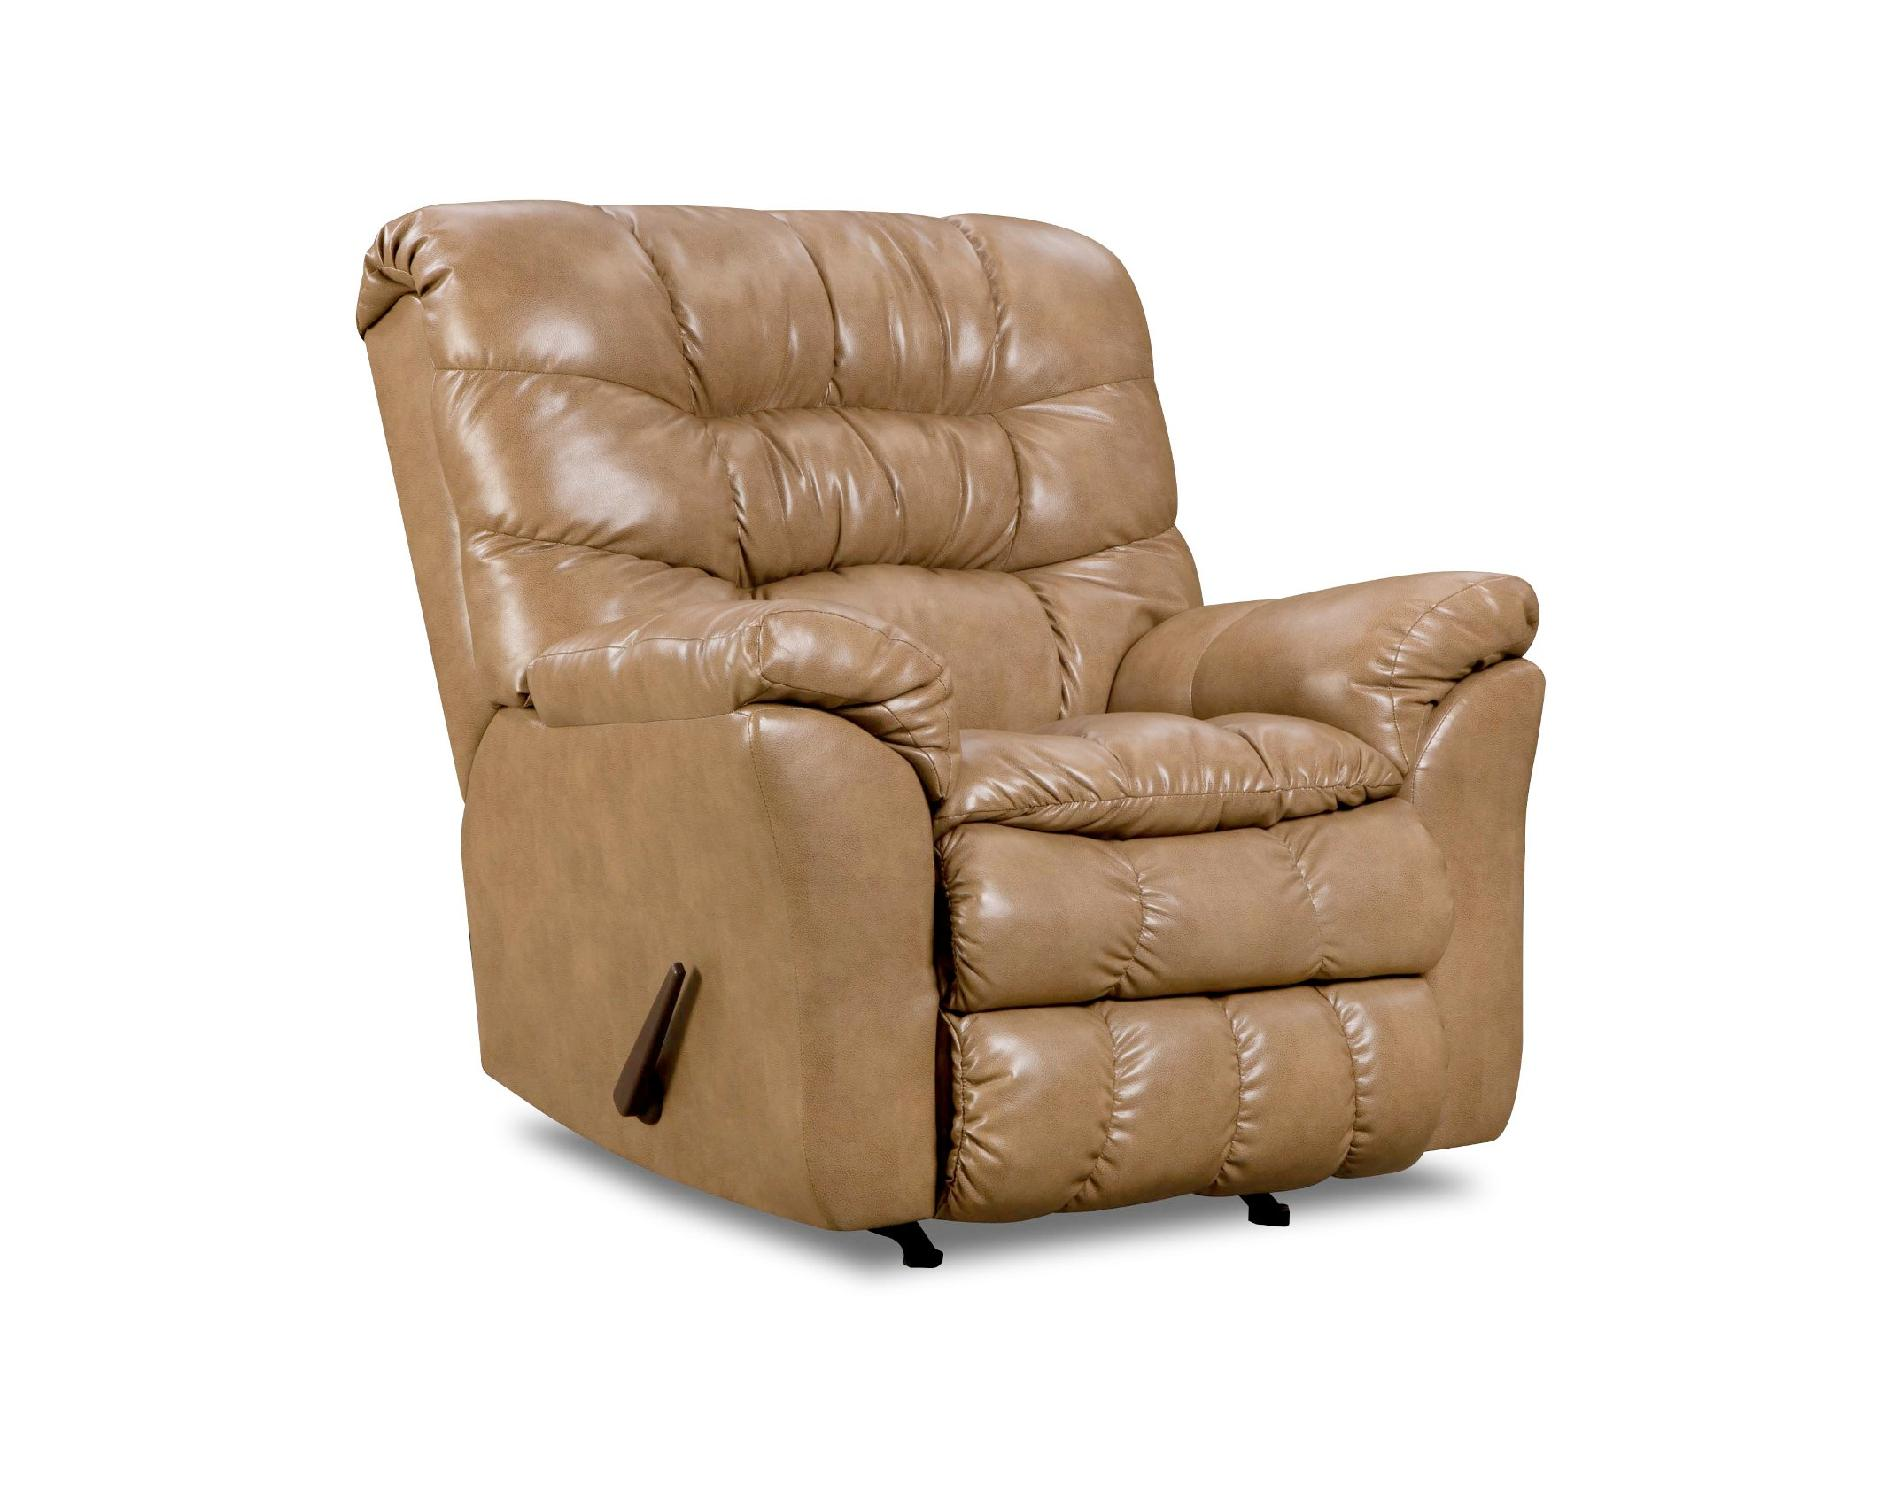 sears recliner chairs back support for office chair singapore simmons upholstery bonded leather shop living